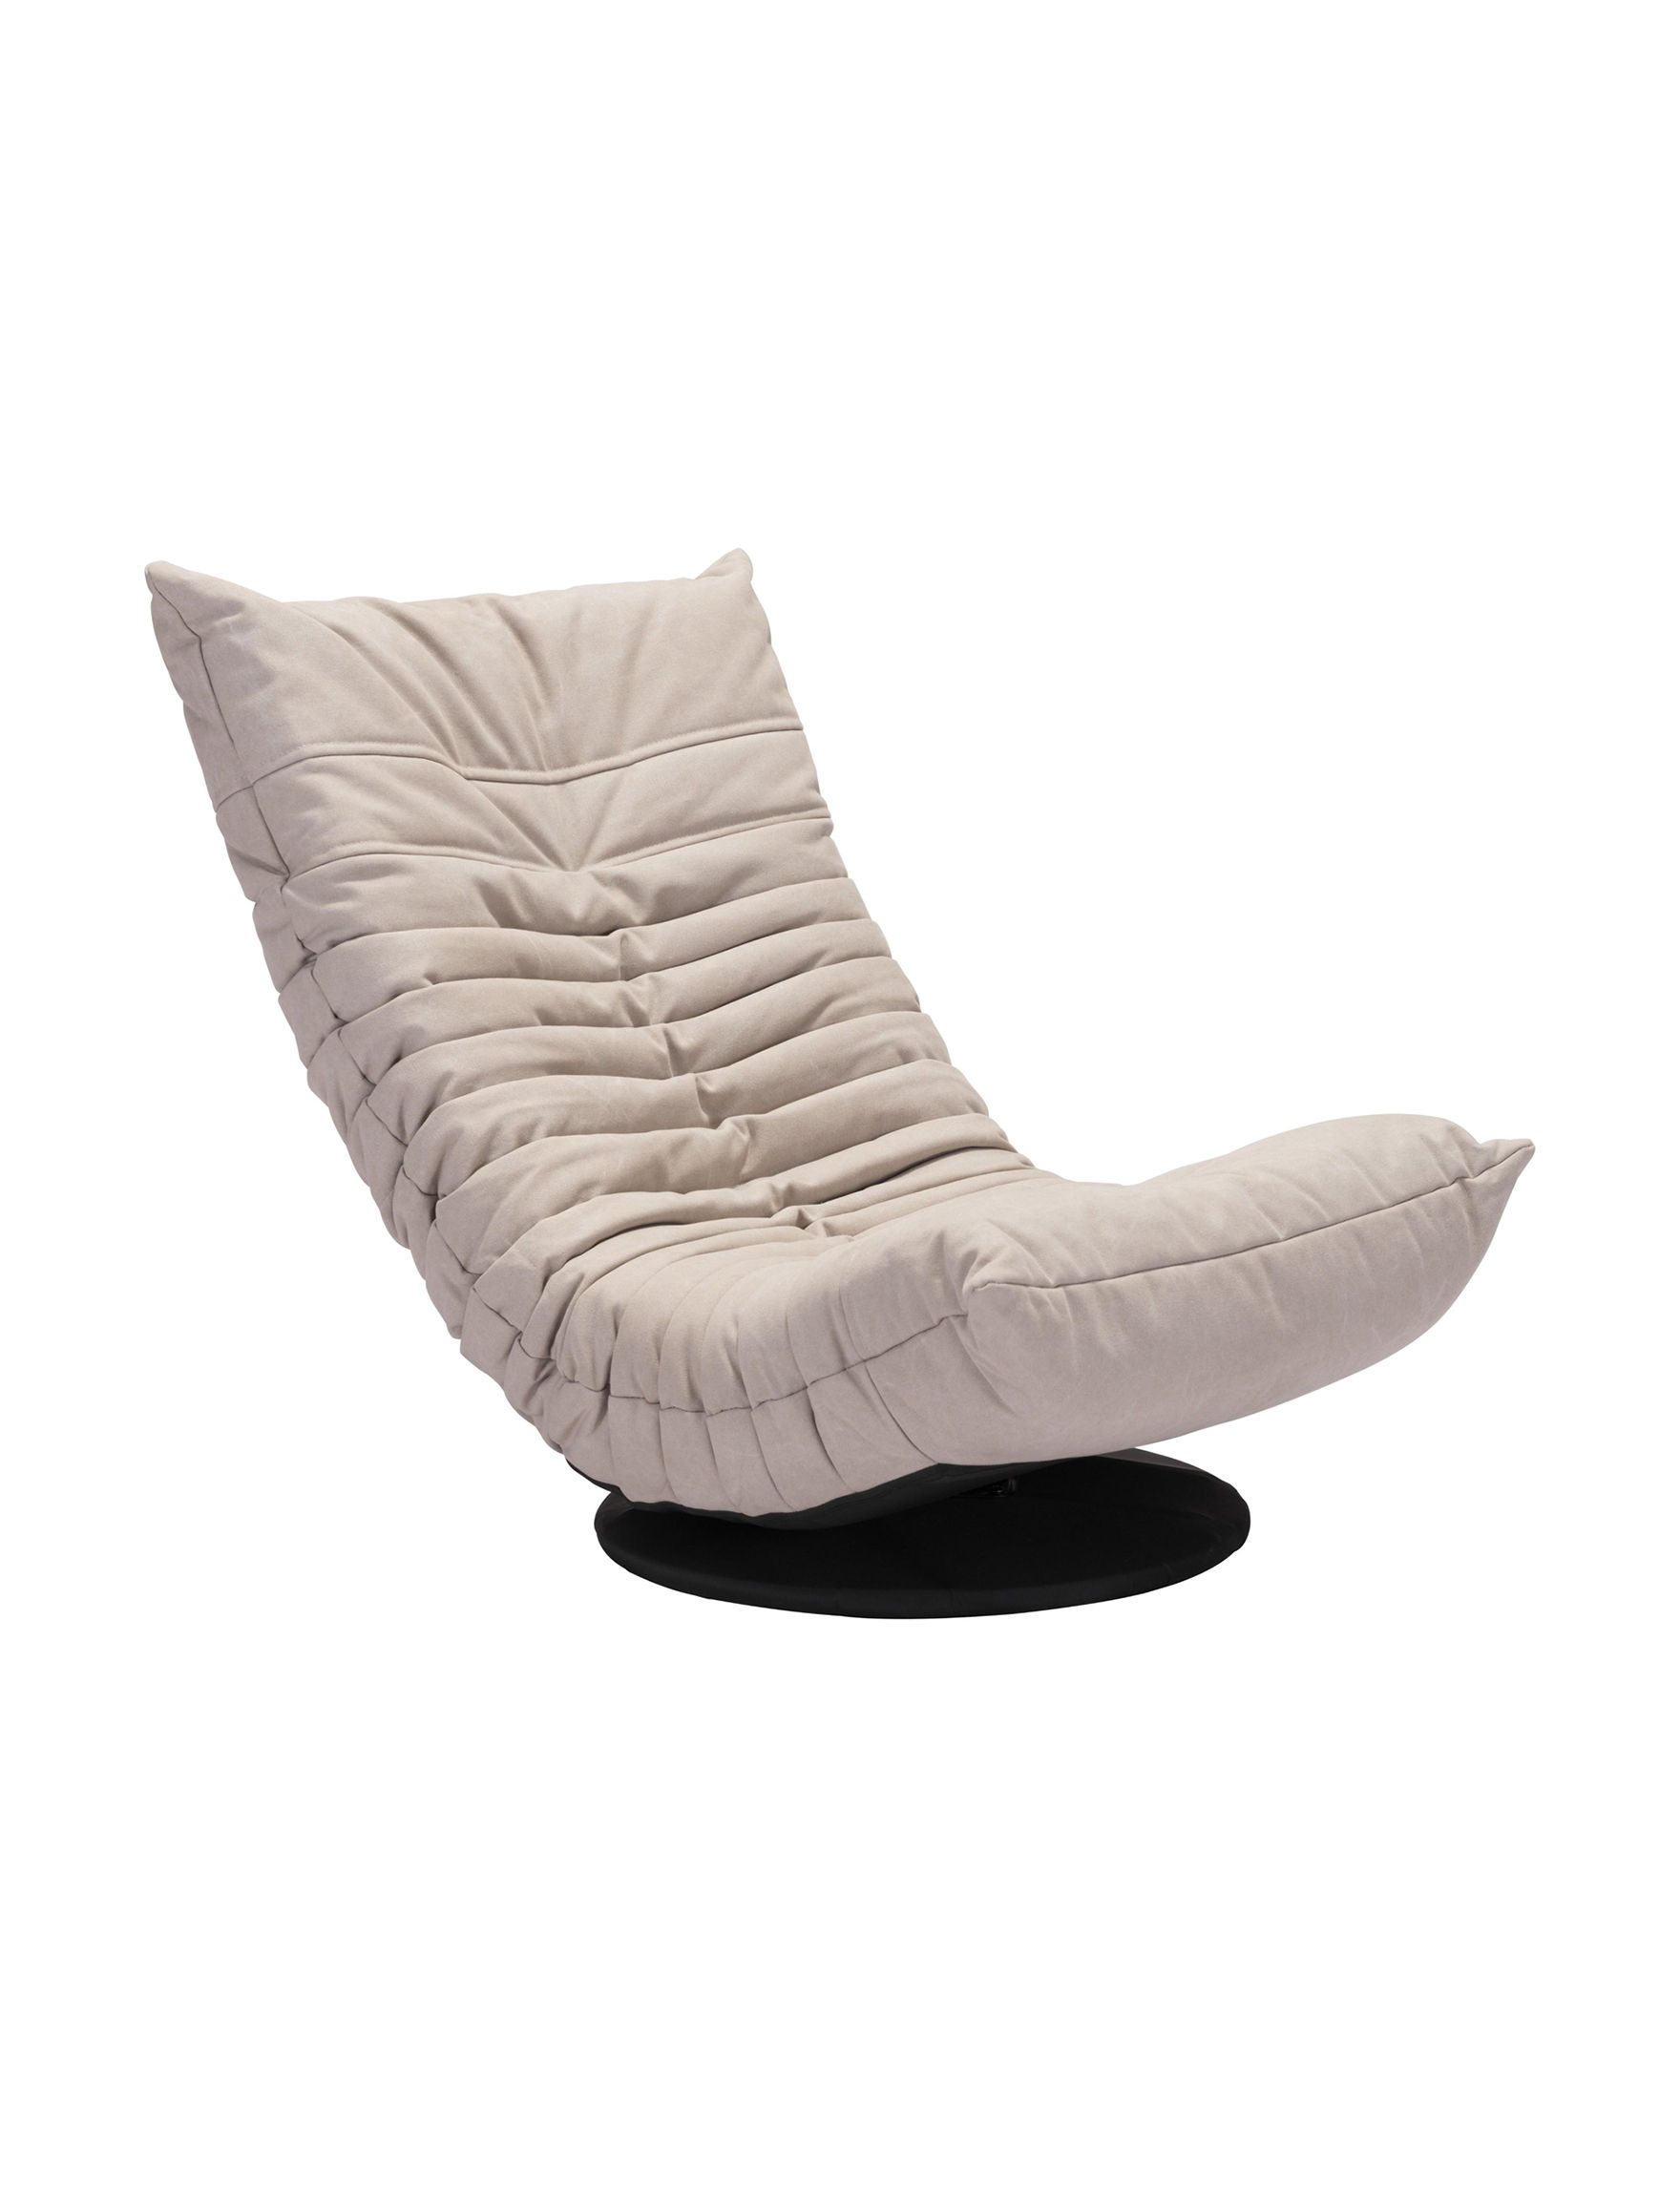 Zuo Modern Beige Accent Chairs Living Room Furniture